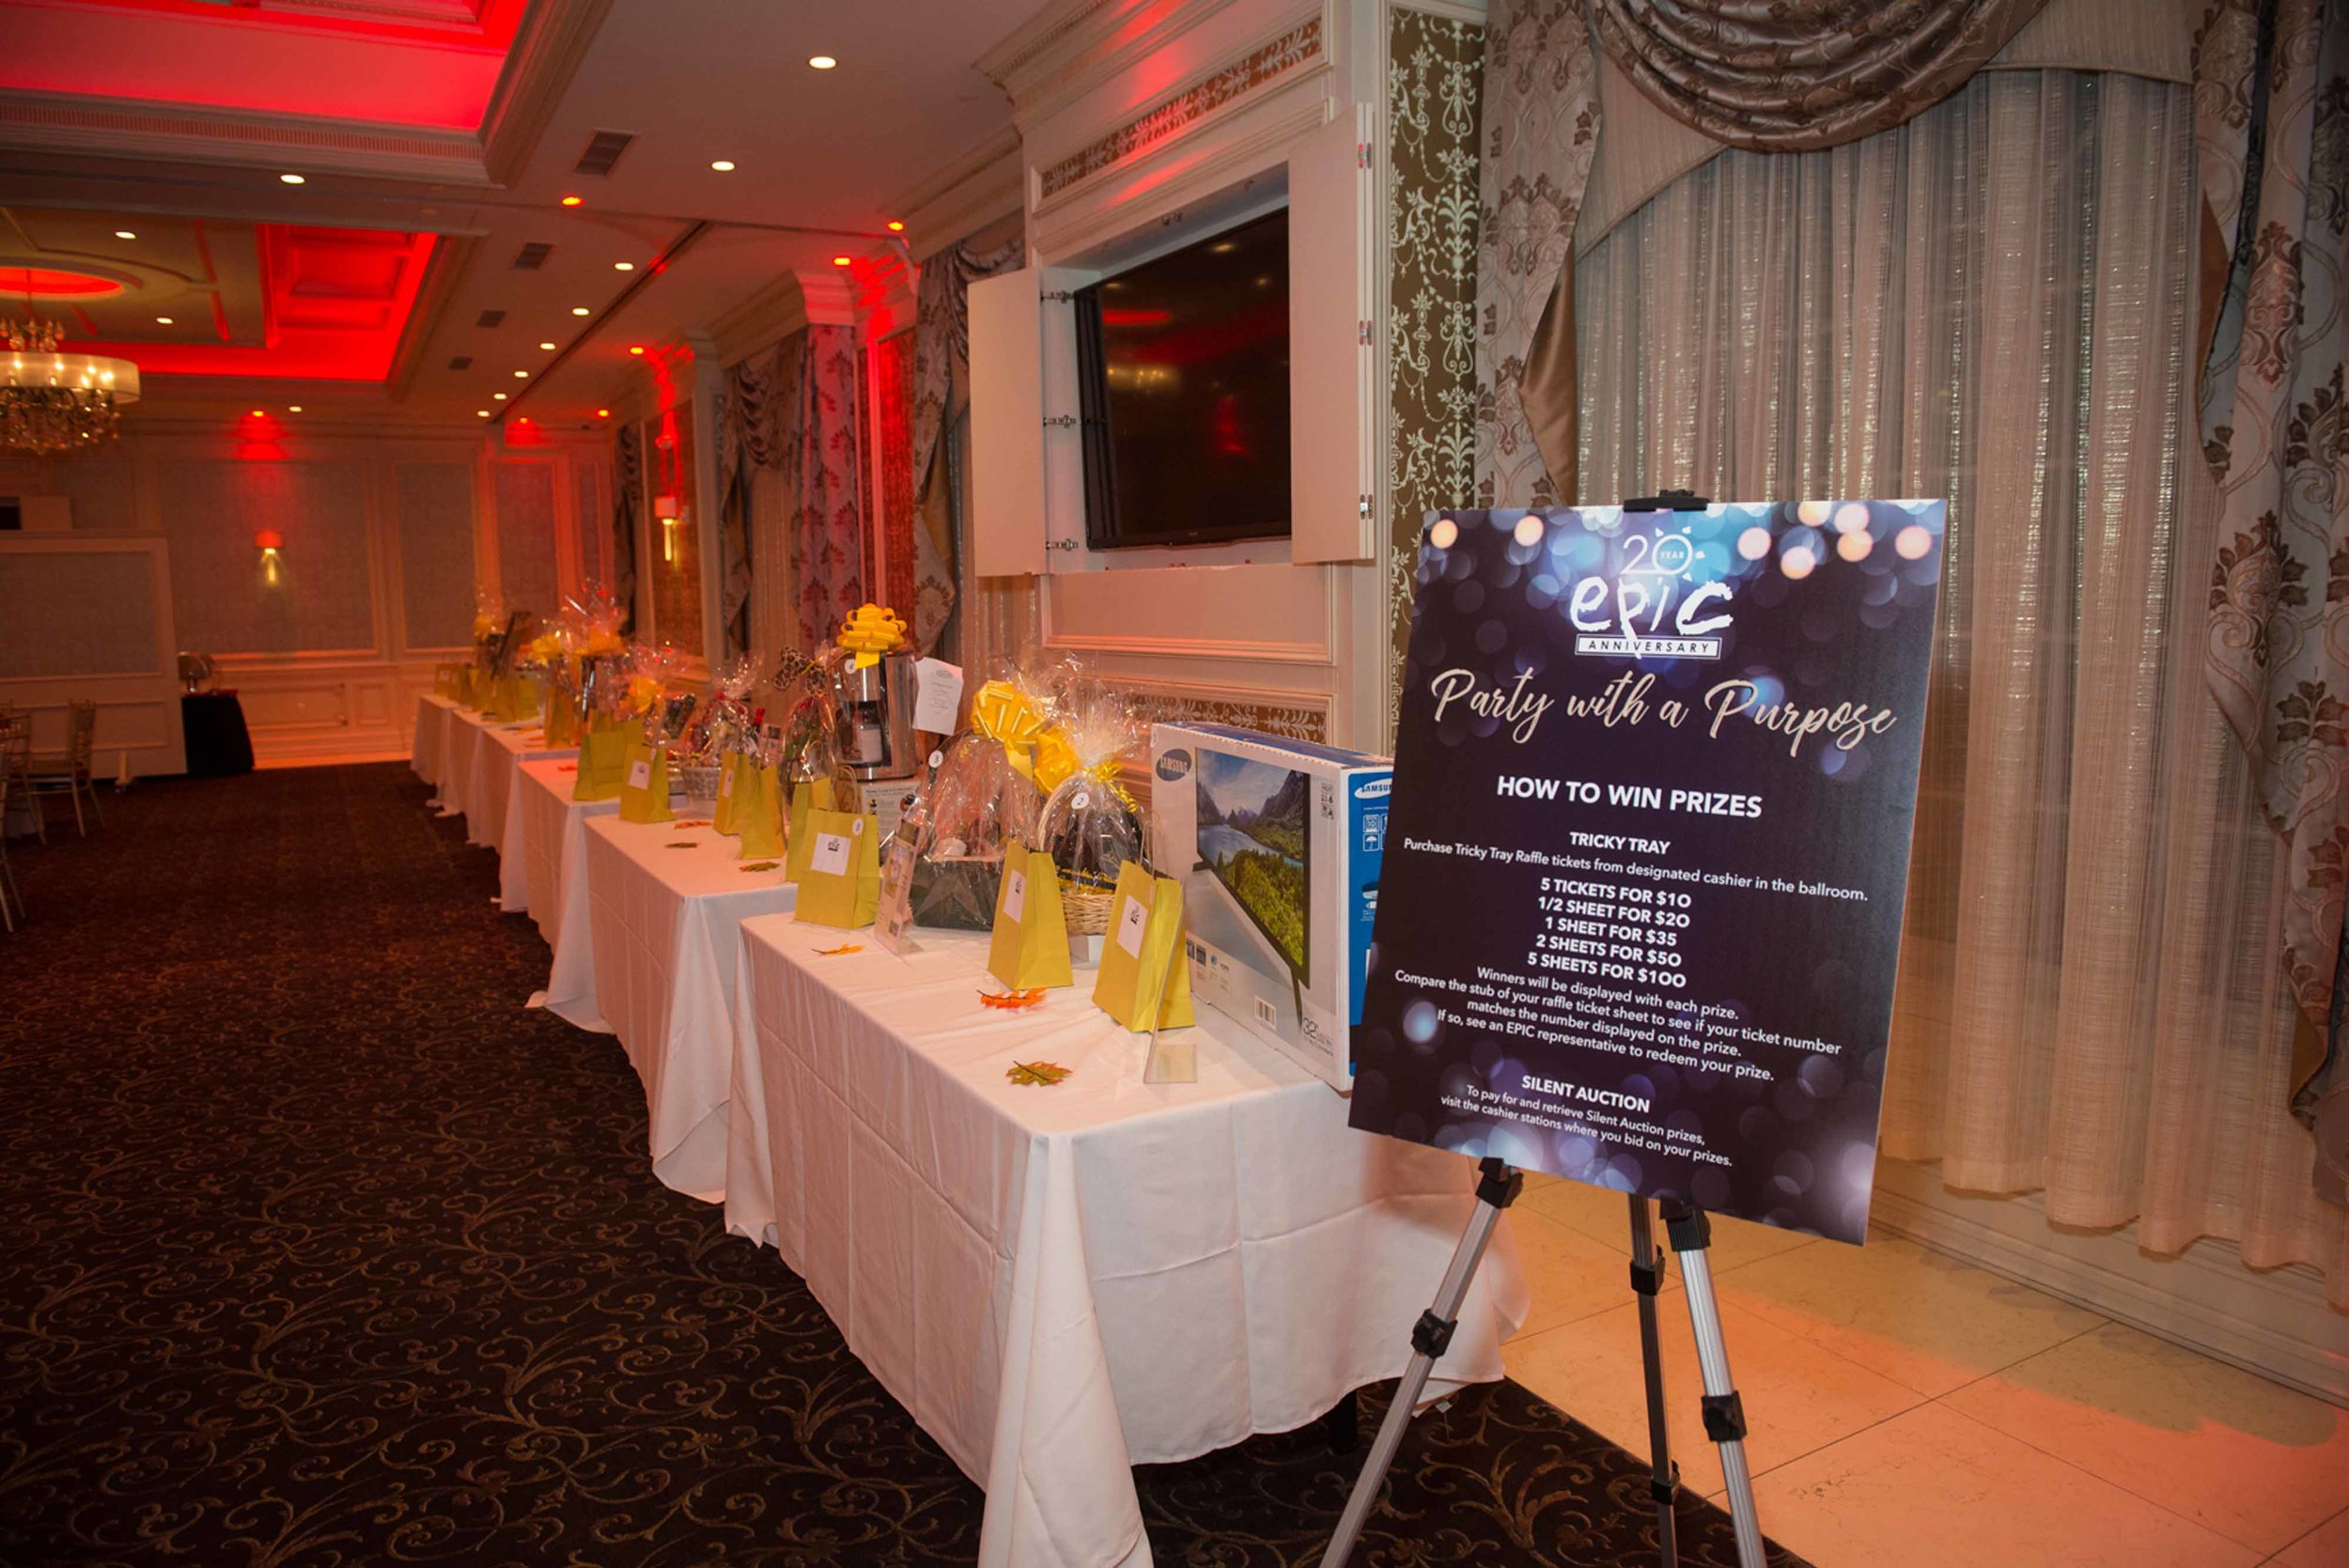 2017-11-10 The EPIC School - Party with a Purpose - Biagios on the Terrace - Paramus NJ-16.jpg